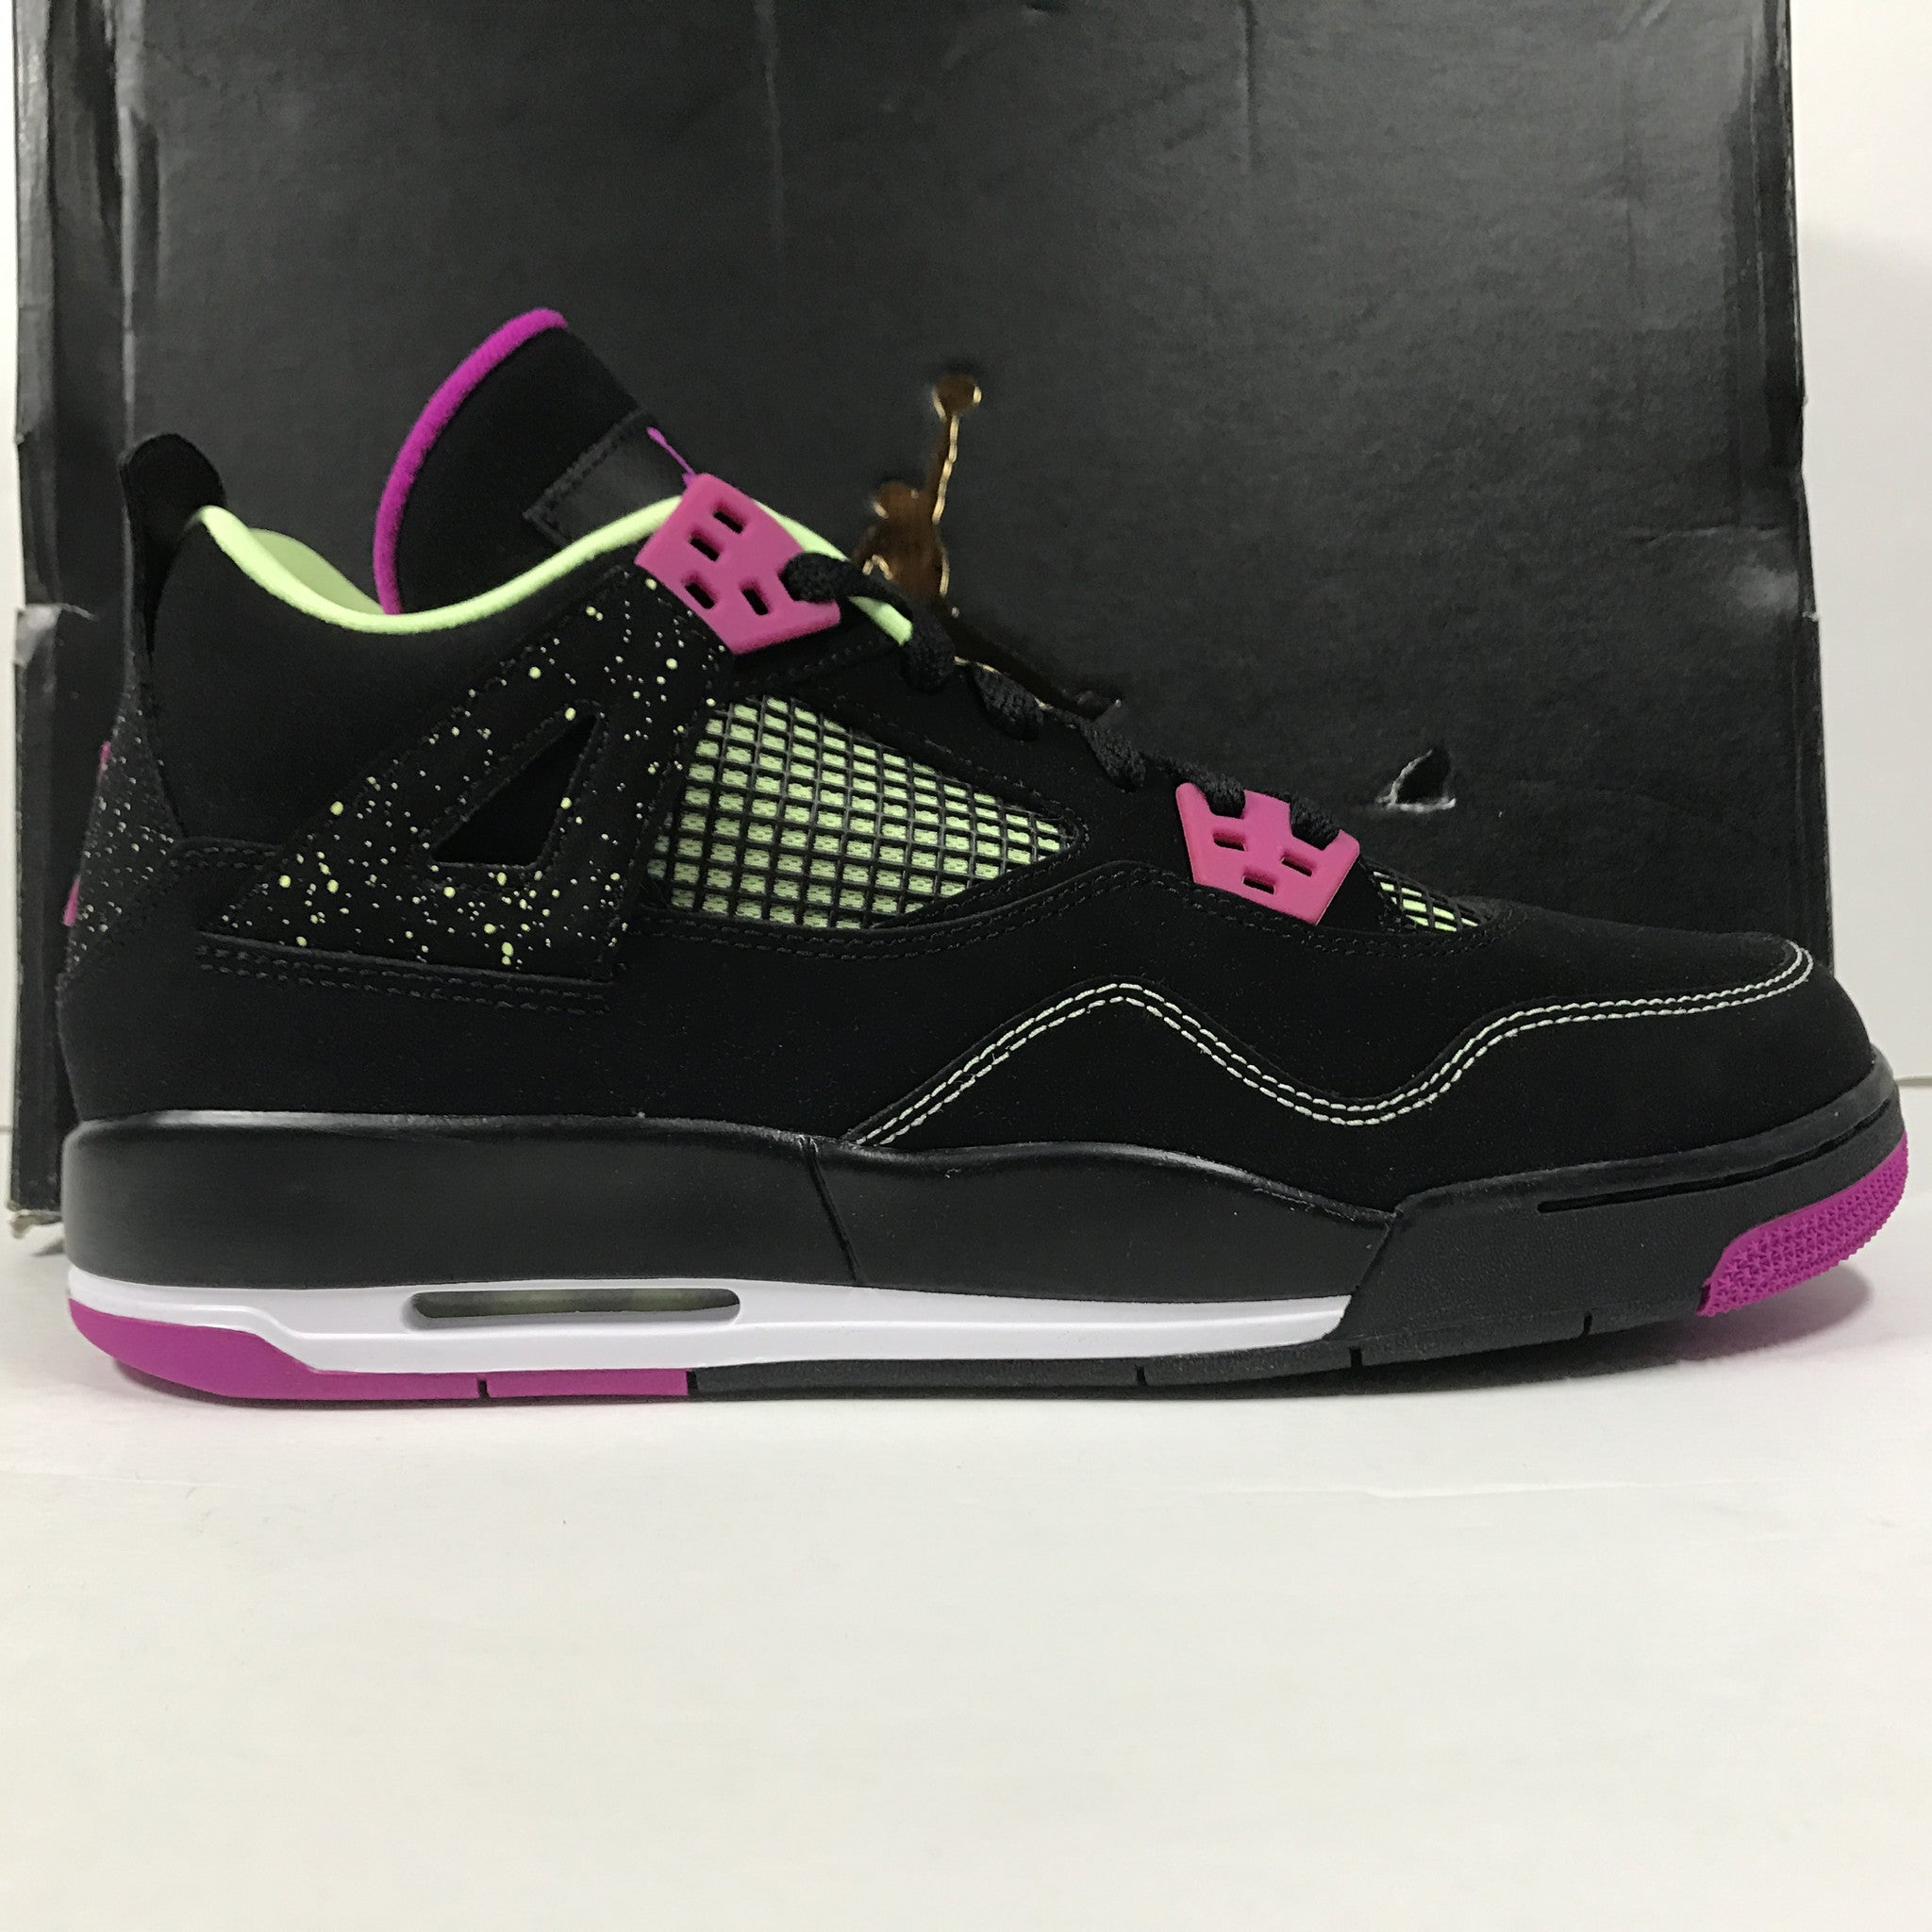 DS Nike Air Jordan 4 IV Retro 30th GG Black/Fuchscia Size 9Y - DOPEFOOT  - 1